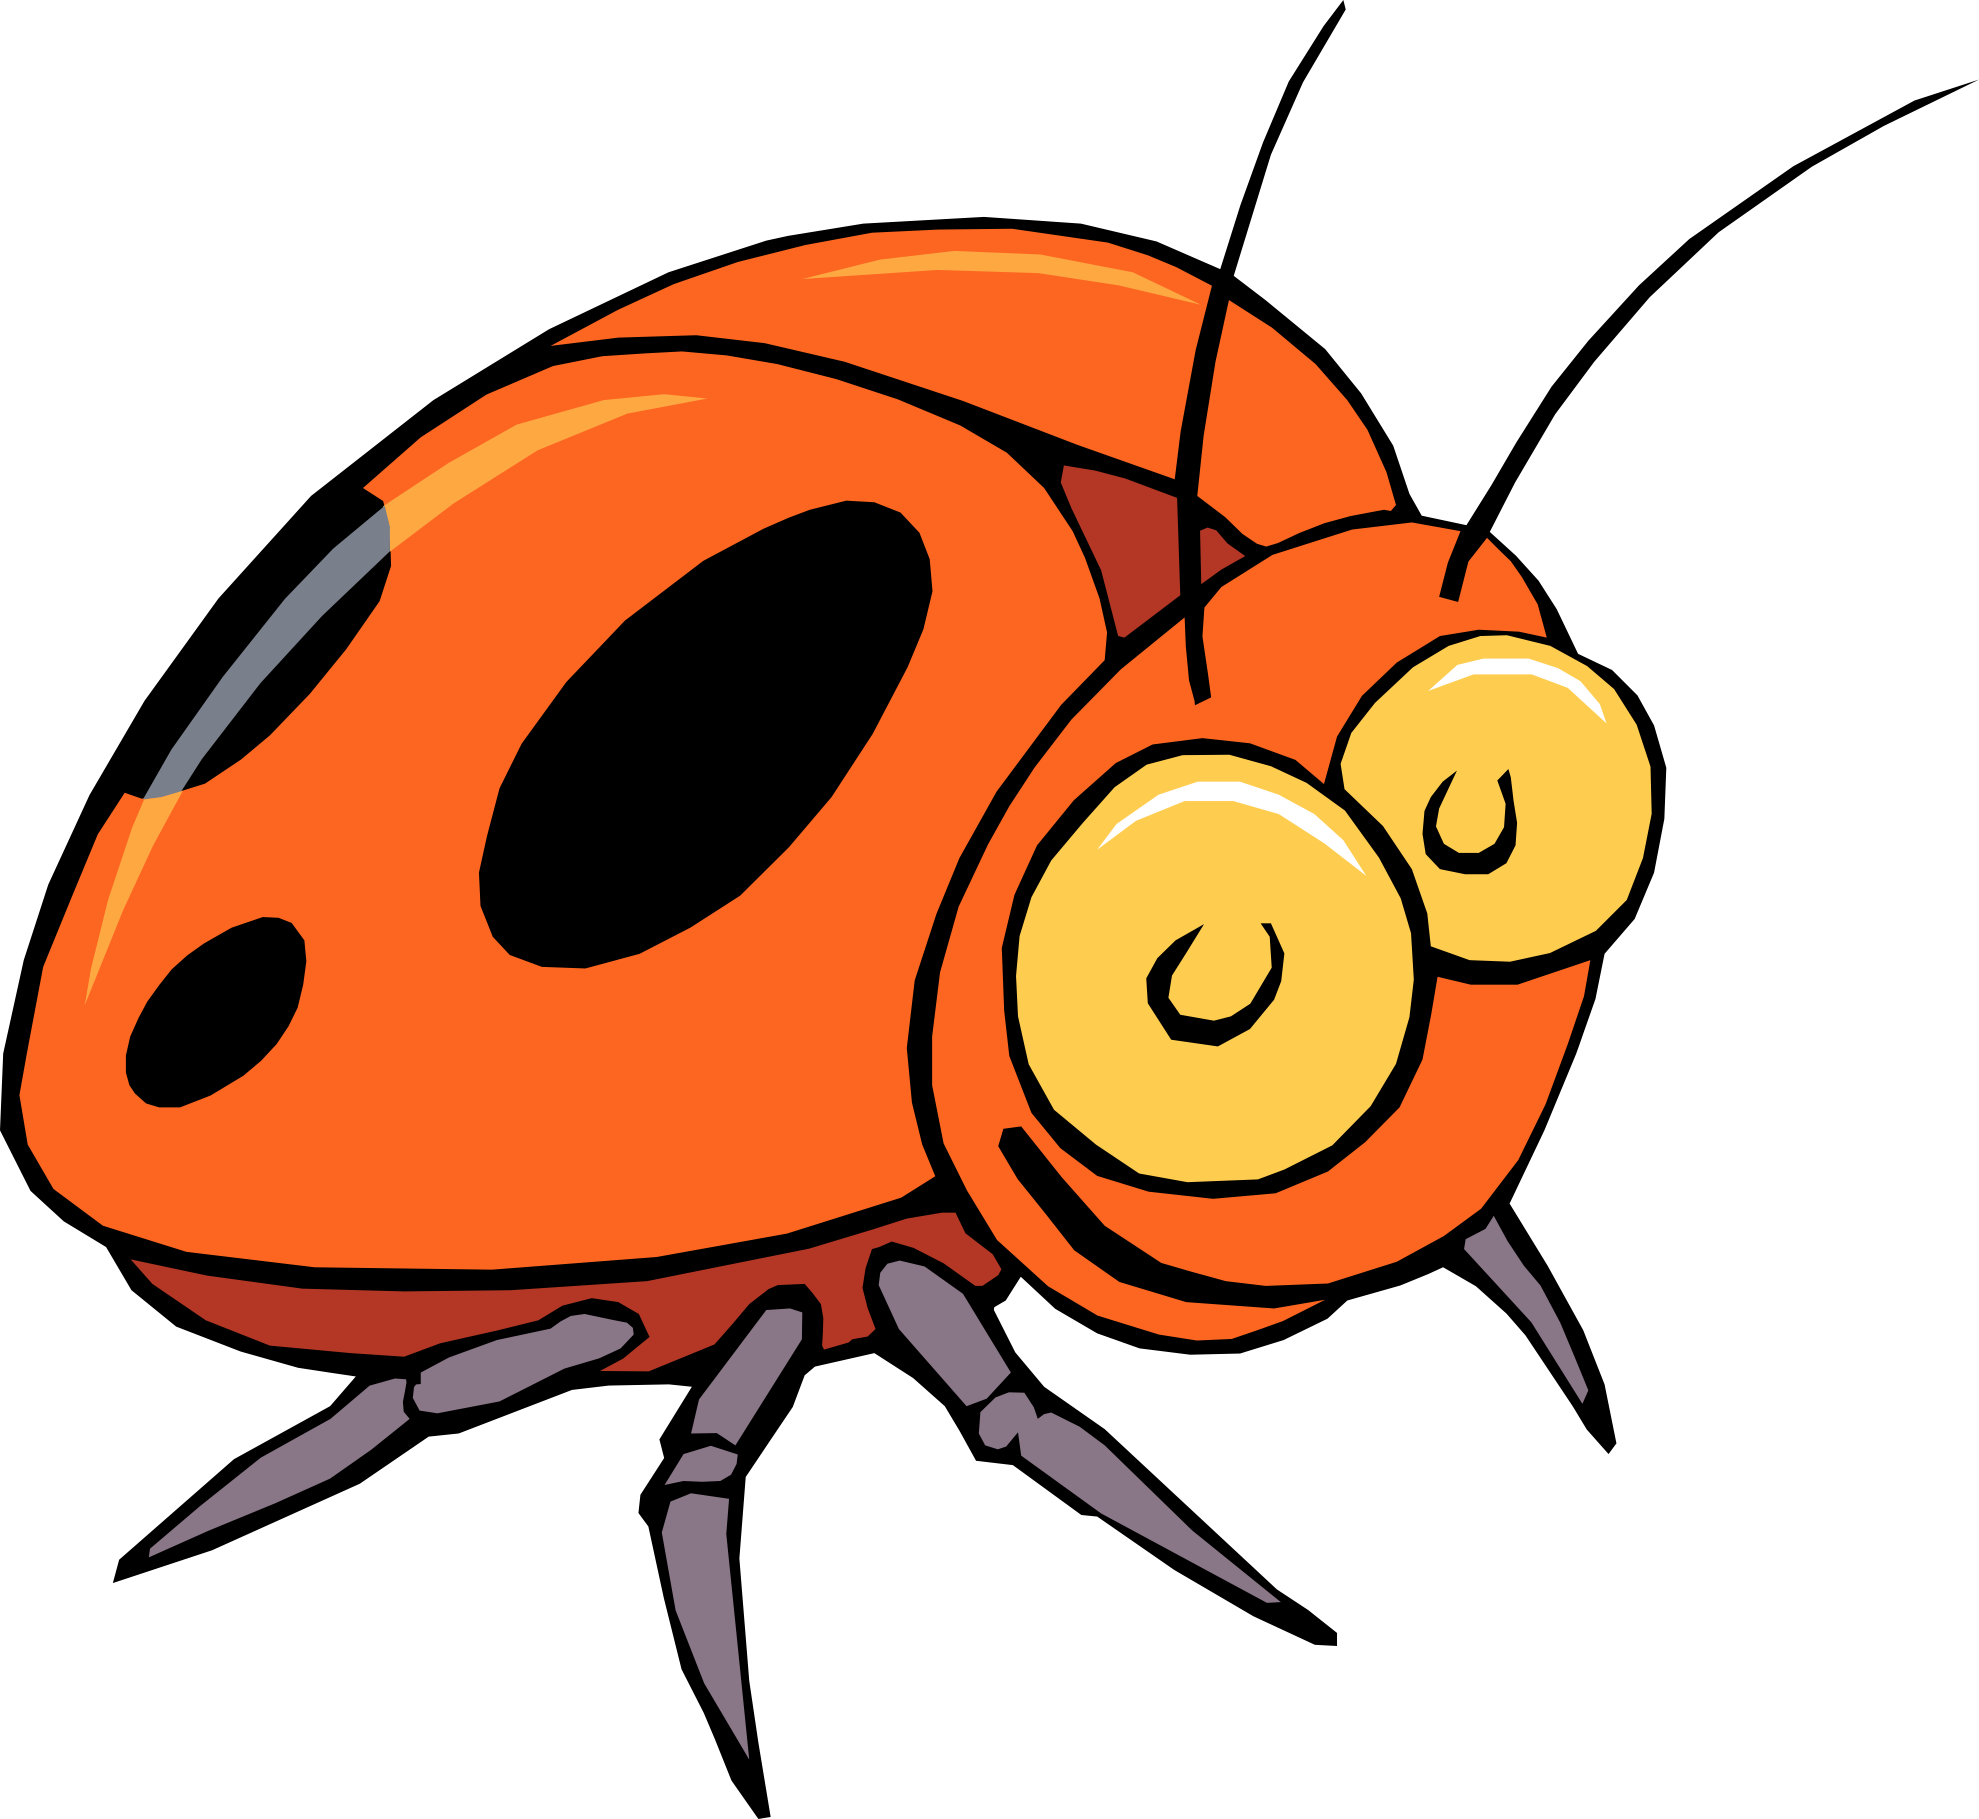 Insect Clipart-Insect Clipart-17